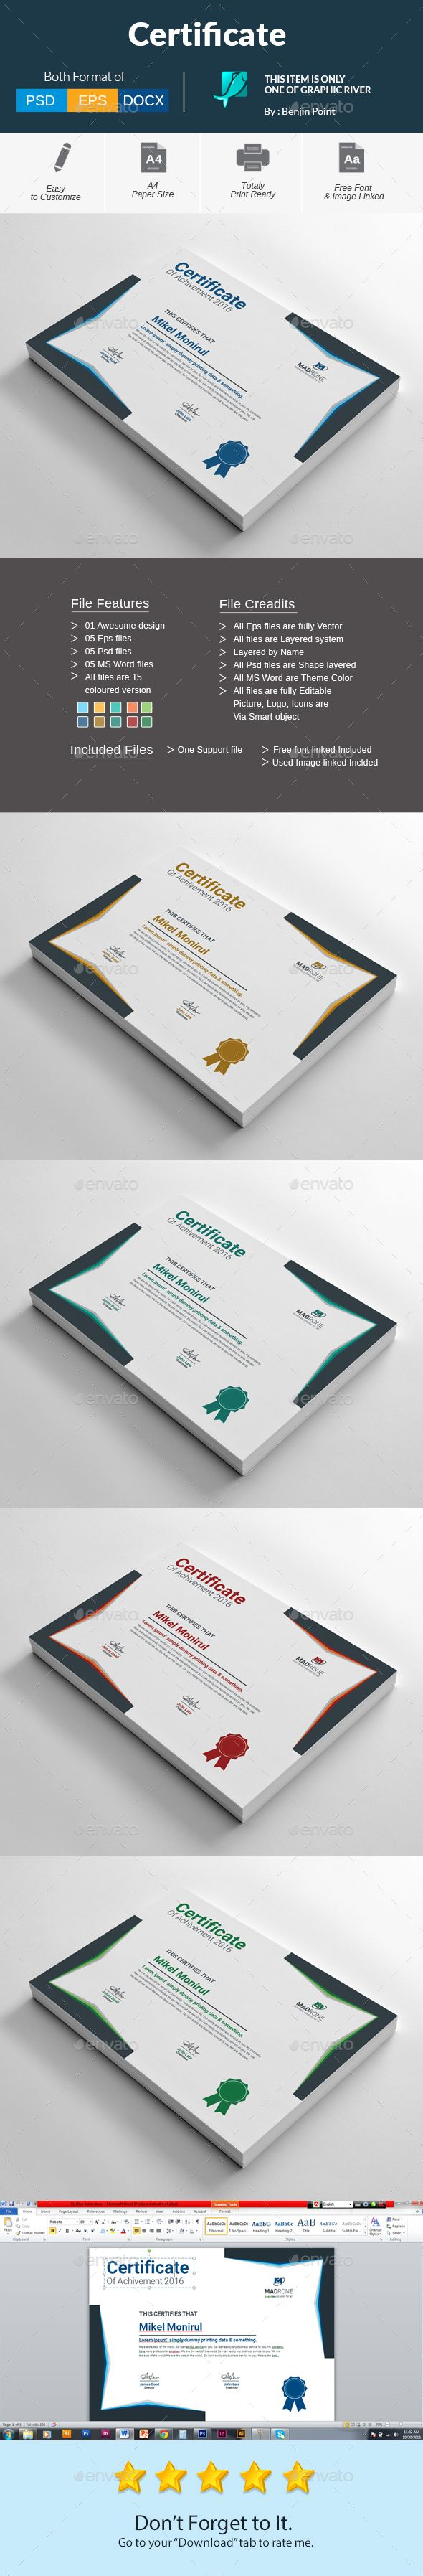 Certificate Template PSD, Vector EPS, AI Illustrator, MS Word